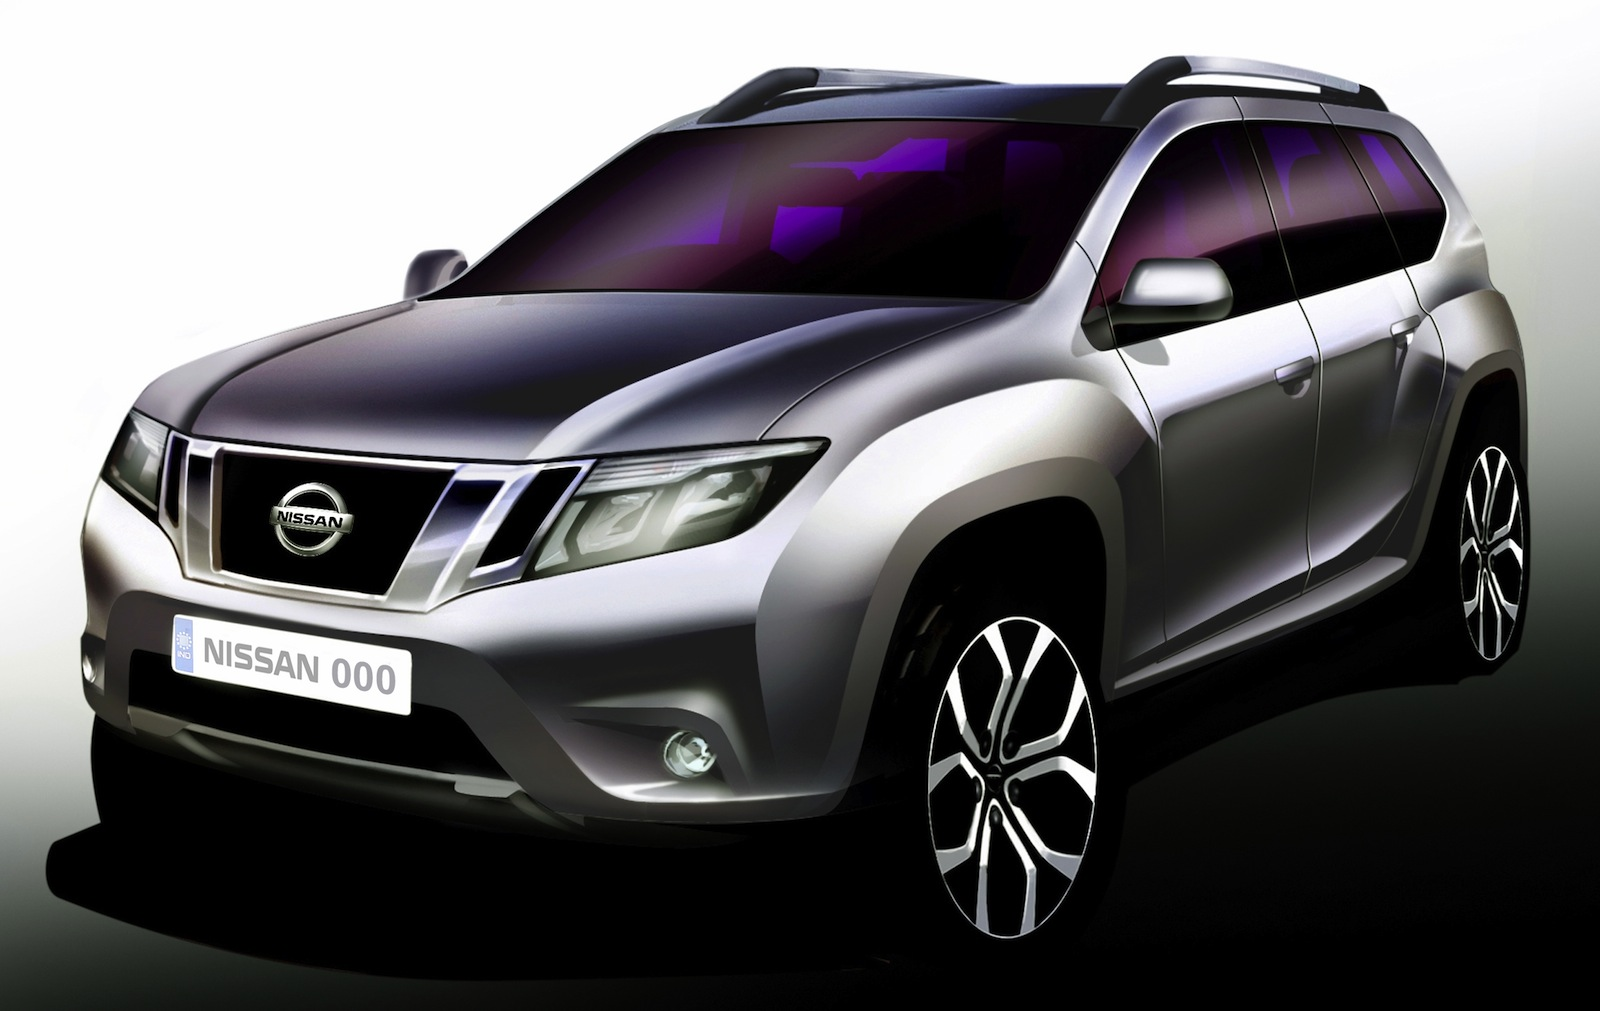 Nissan Terrano Official Sketch